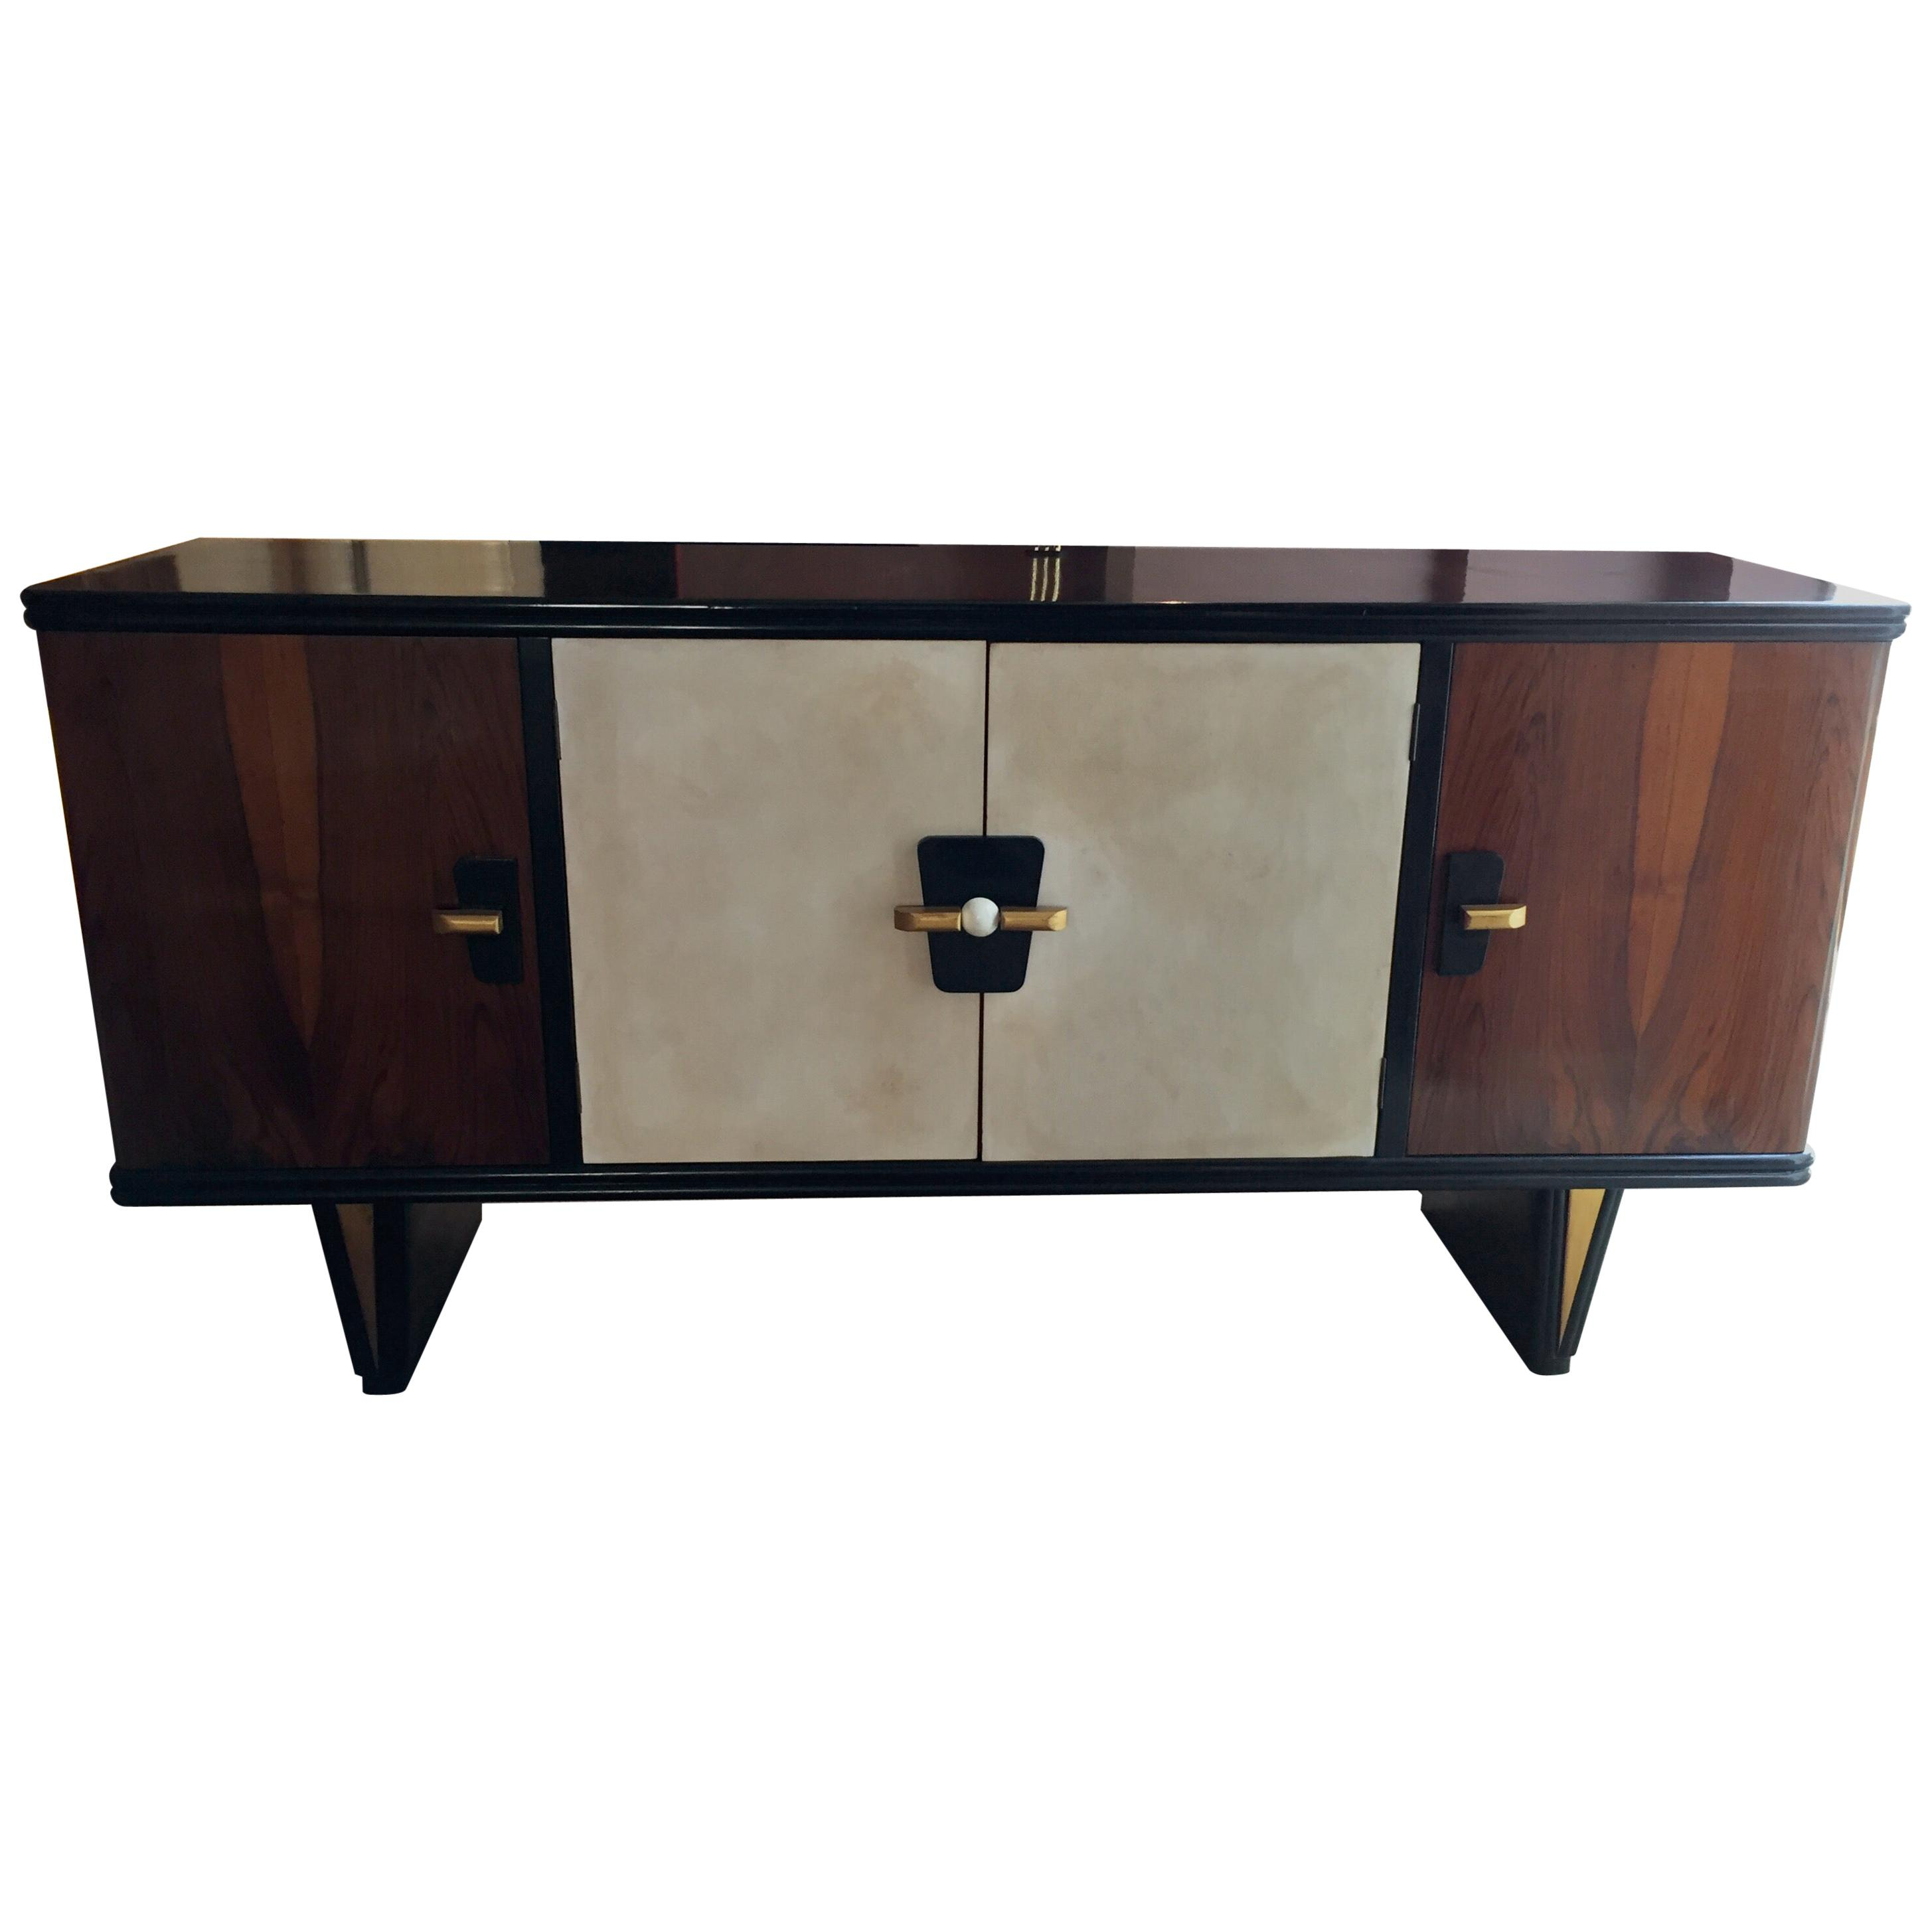 Antique And Vintage Buffets - 2,700 For Sale At 1Stdibs inside 3-Drawer Black Storage Buffets (Image 2 of 30)